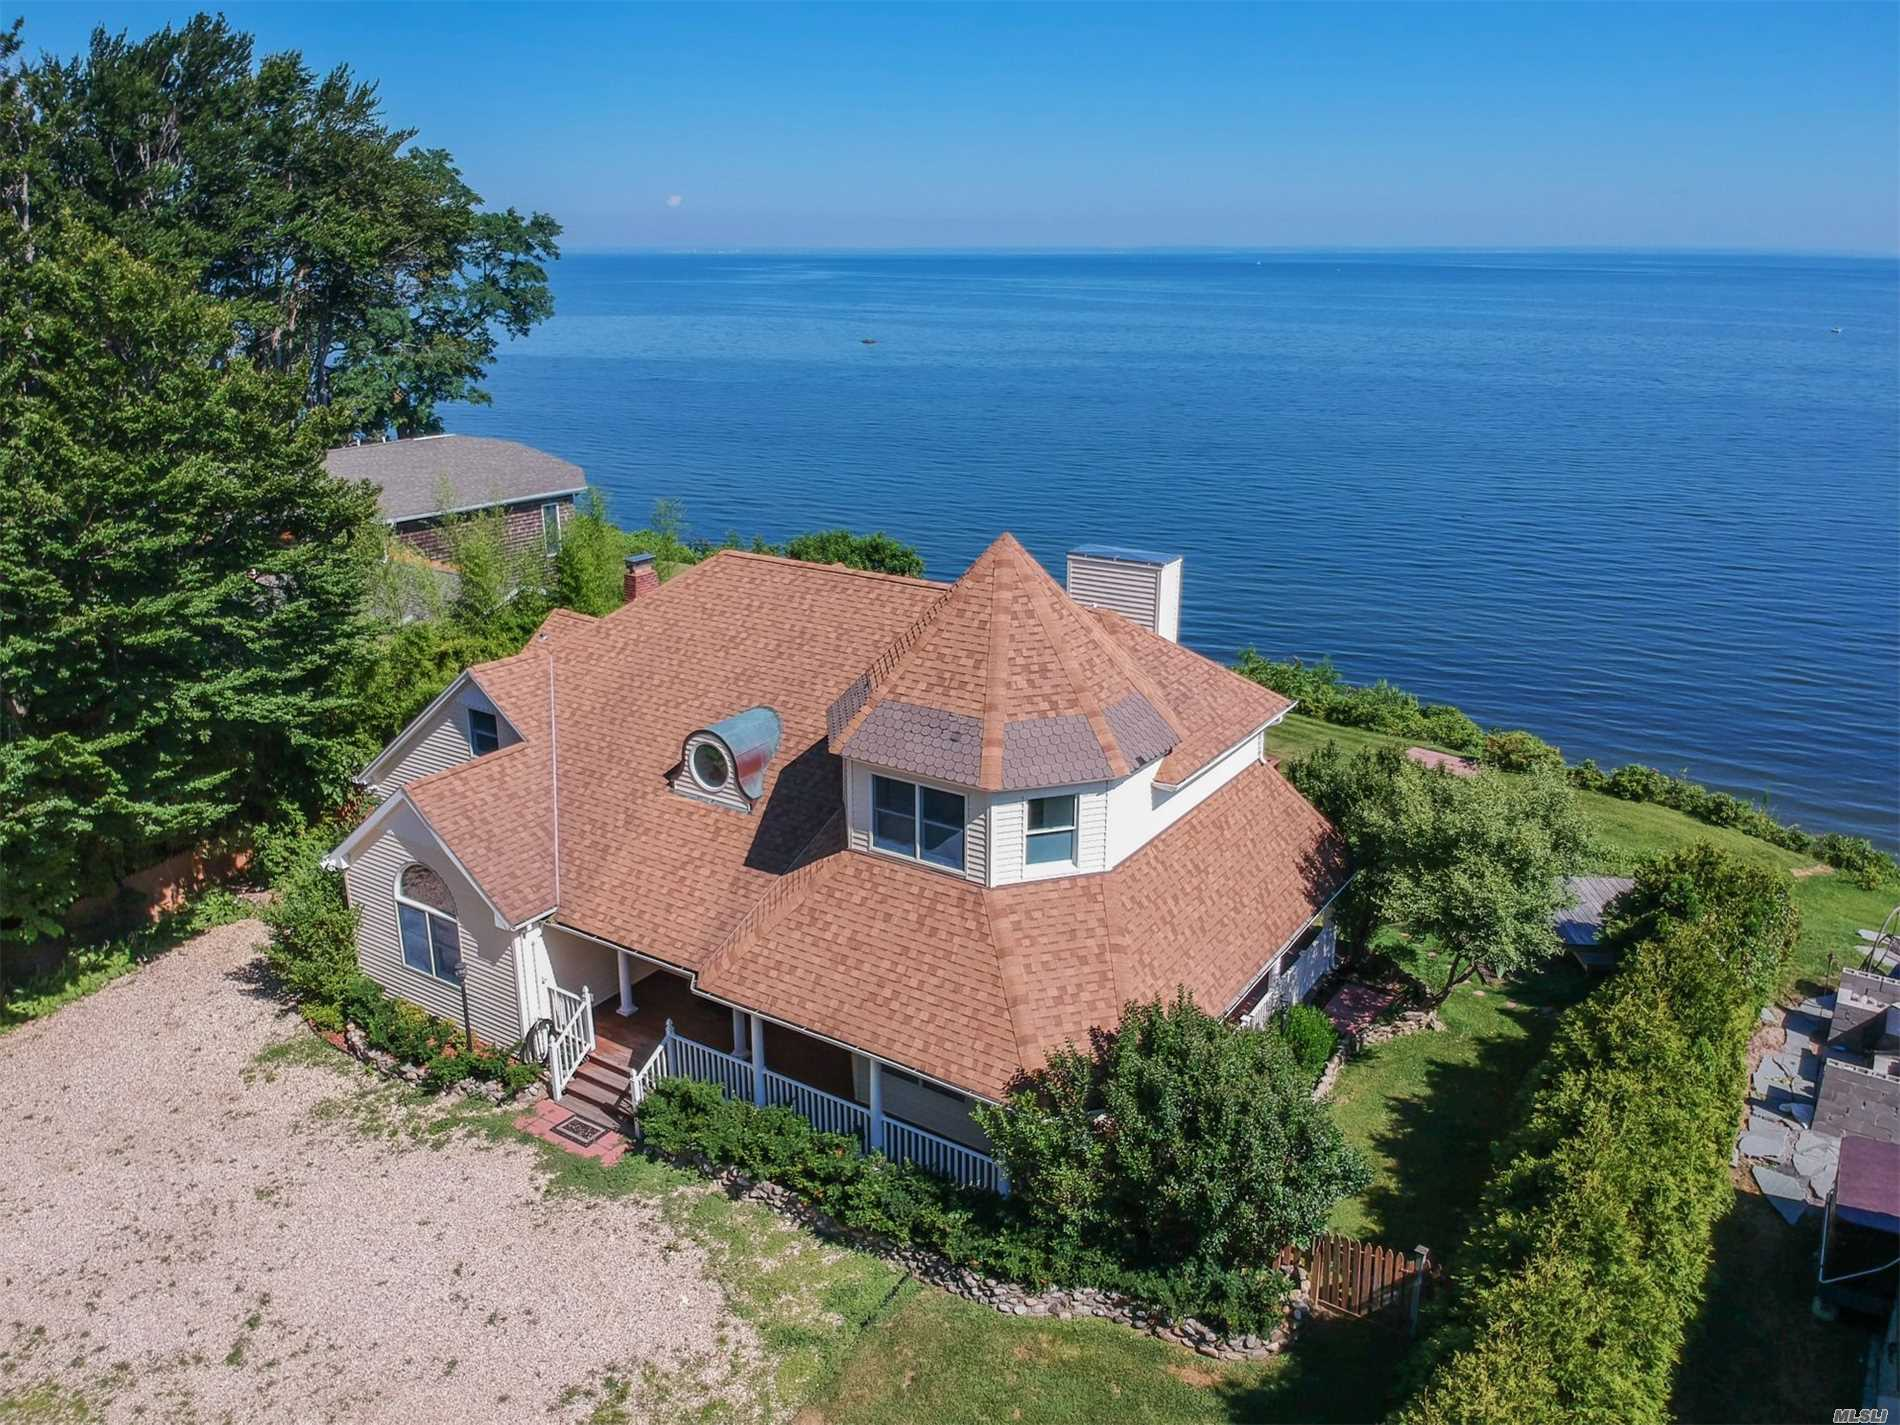 Expansive Sound Views Full Waterfront 4 Bedrooms, 3 Full Baths, Living Rm & Water Views, Formal Dining Rm W/Fireplace, Kitchen With Water Views, Breakfast Rm With Front Water Views, & Master En Suite W/ Full Water Views. Special Home On A Secluded Double Lot. Pack Your Bags And Move Right In To This Freshly Painted Home.